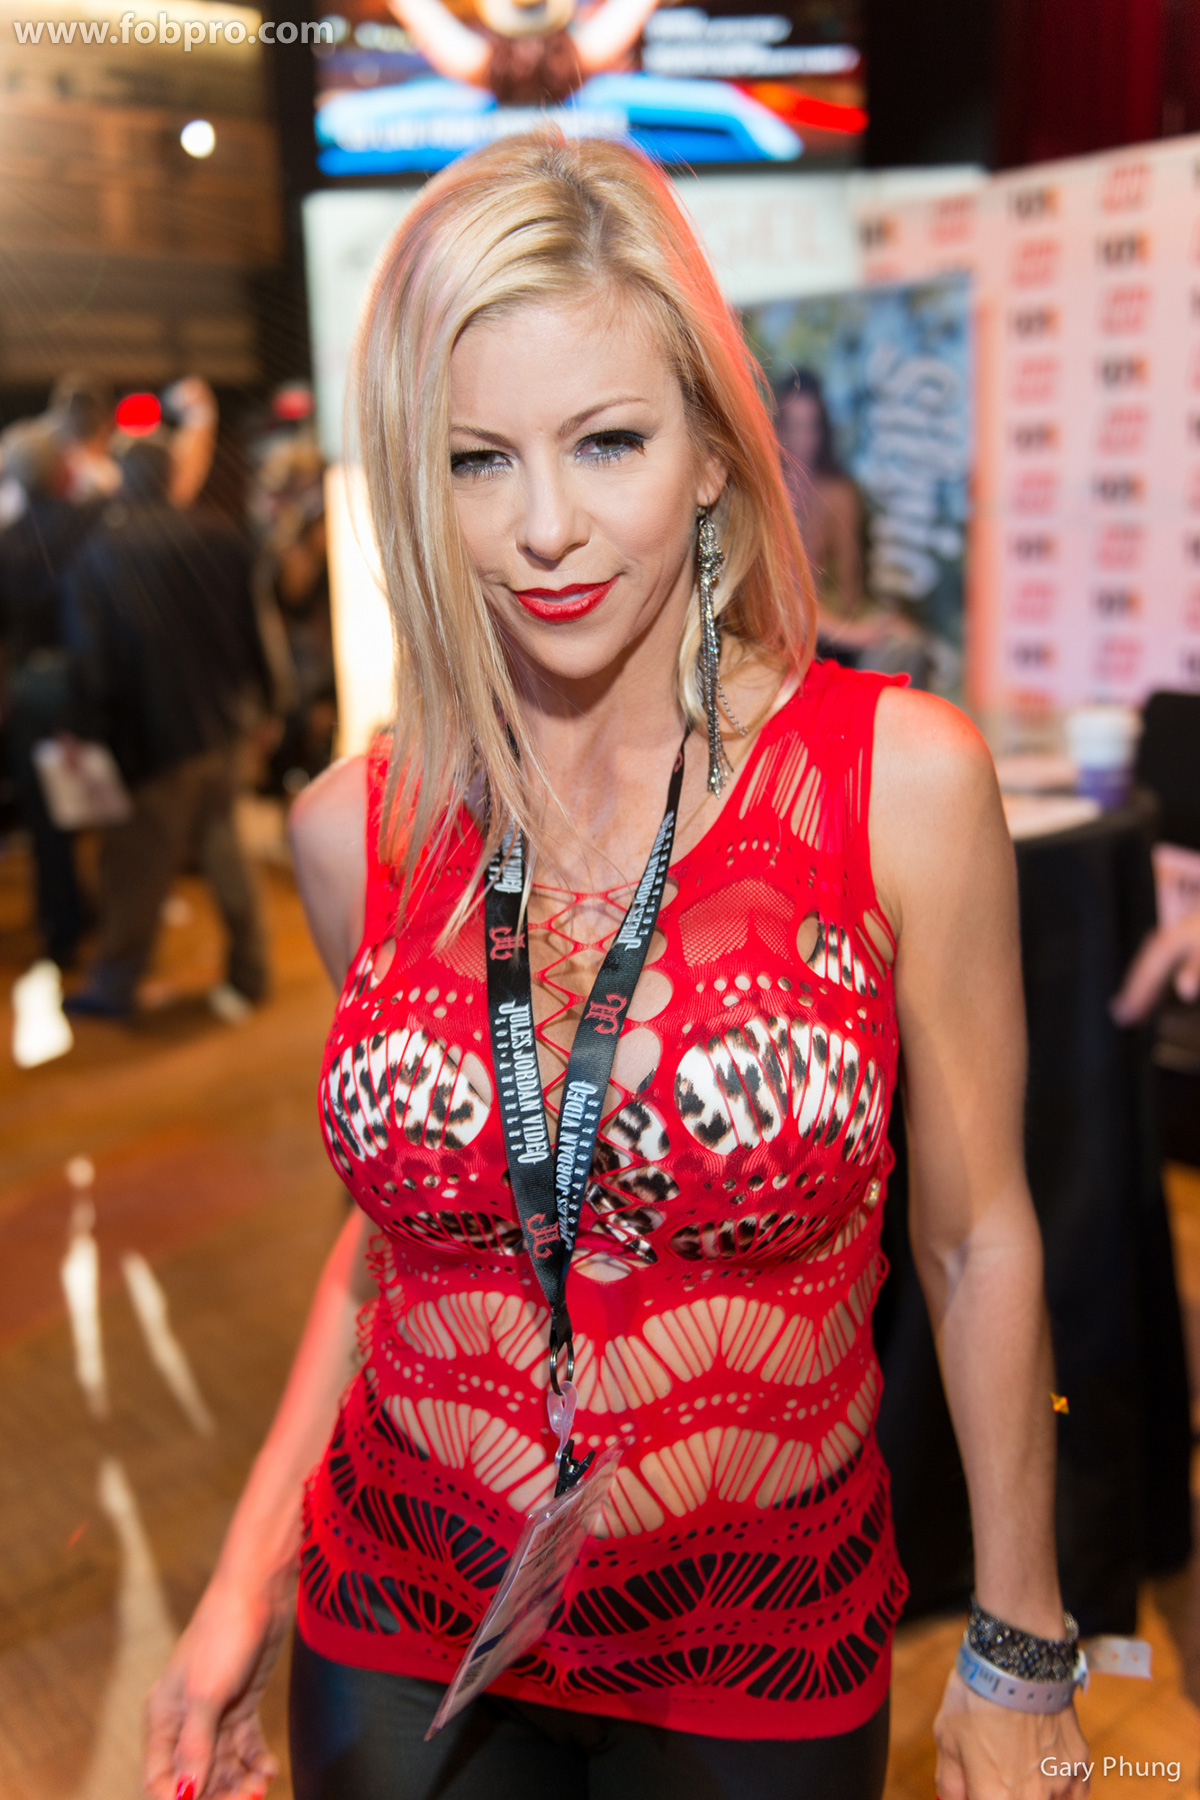 Adult entertainment expo 2017 and avn in vegas feat cece september 9